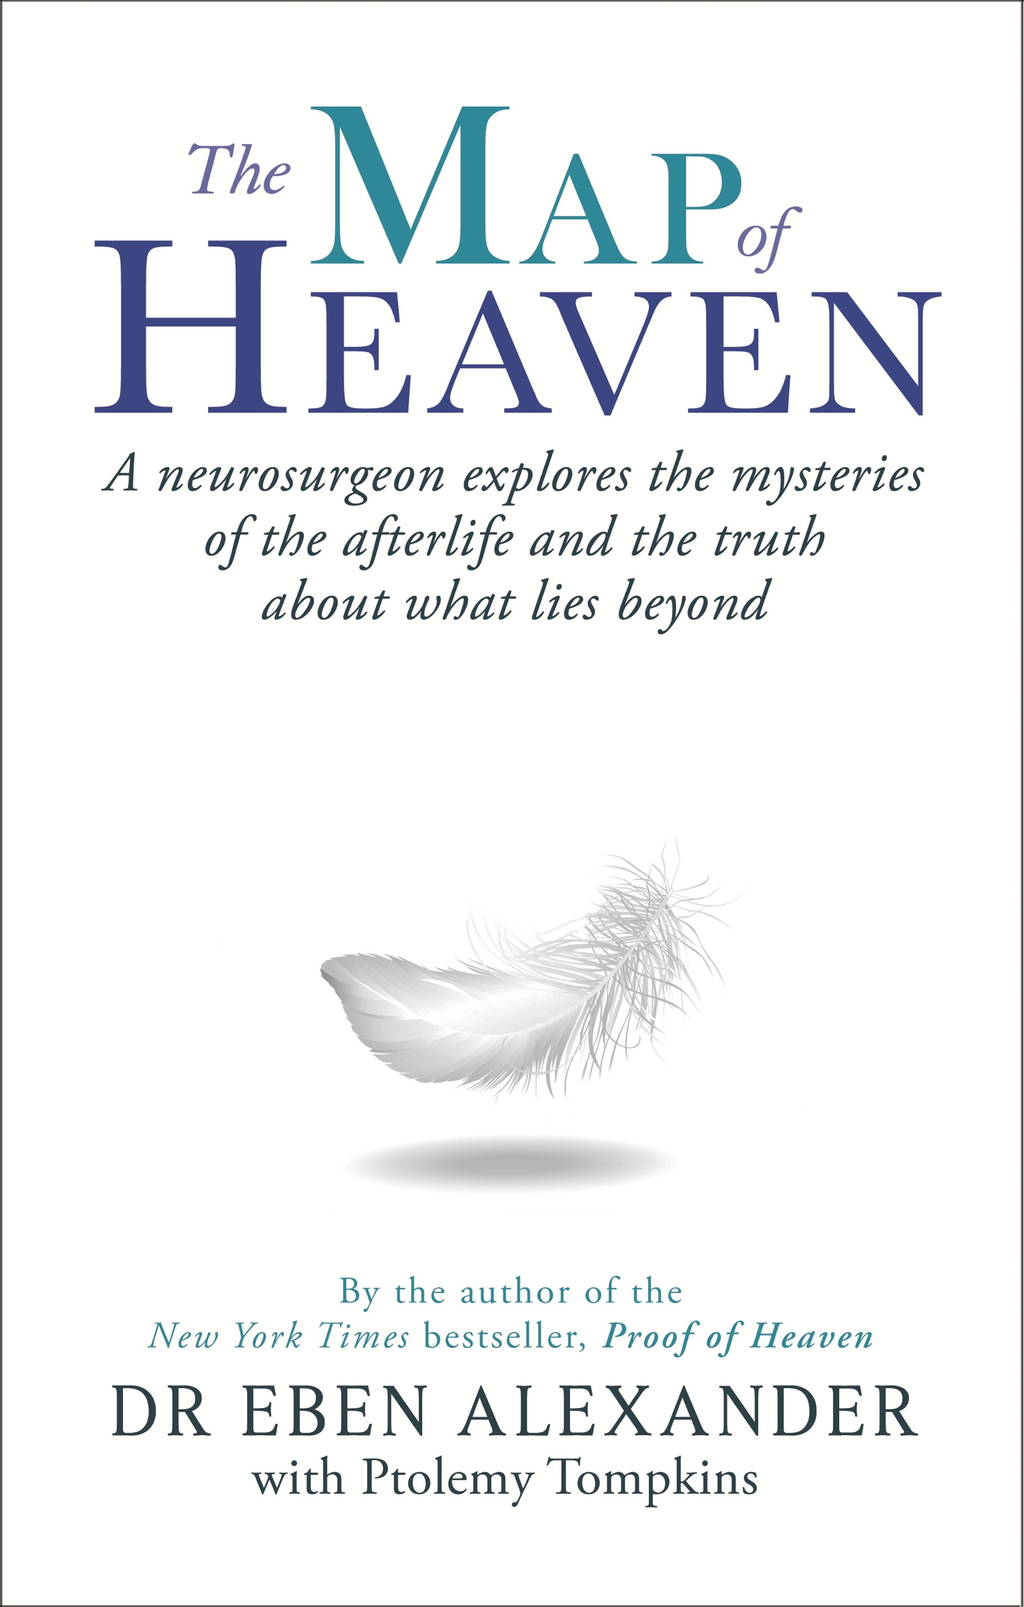 The Map of Heaven A neurosurgeon explores the mysteries of the afterlife and the truth about what lies beyond